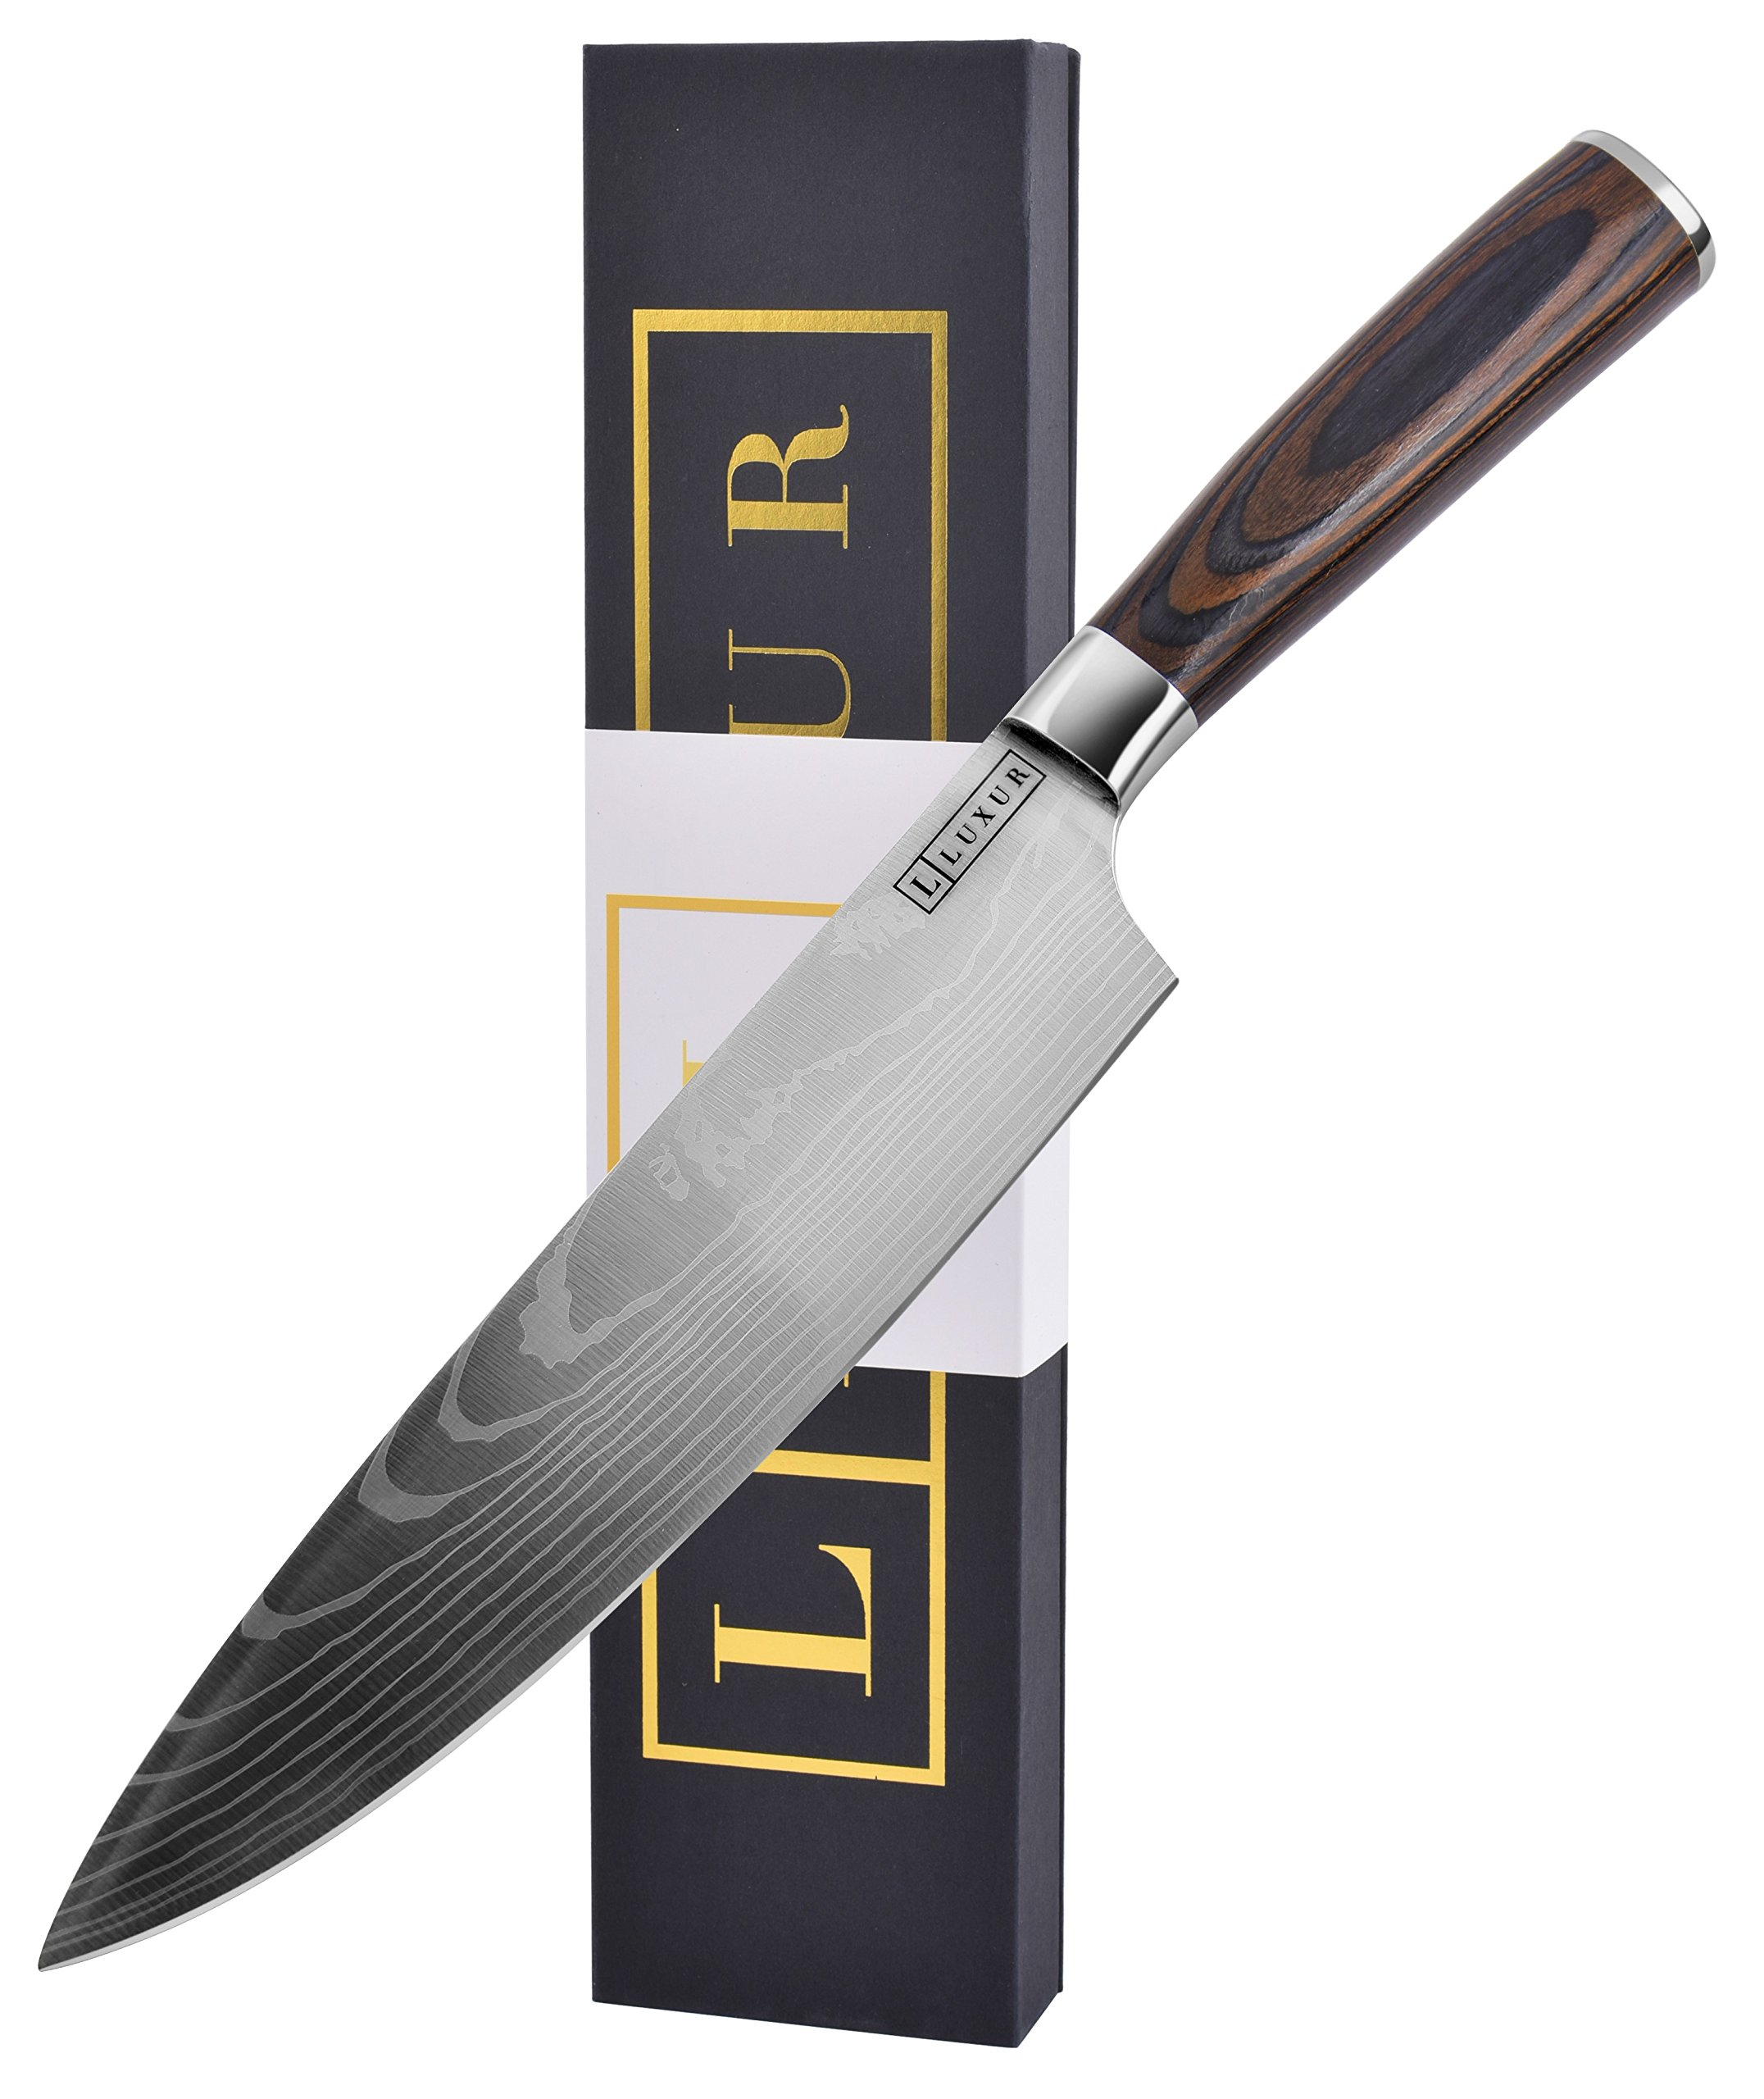 Kitchen Chef Knife by LUXUR, Luxury & Professional High Carbon Steel Knife - Pro Custom Knife designed for Chef - 8 Inch Stainless Steel Blade - Razor Sharp Edge with Smooth Wood Handle and Gift Box